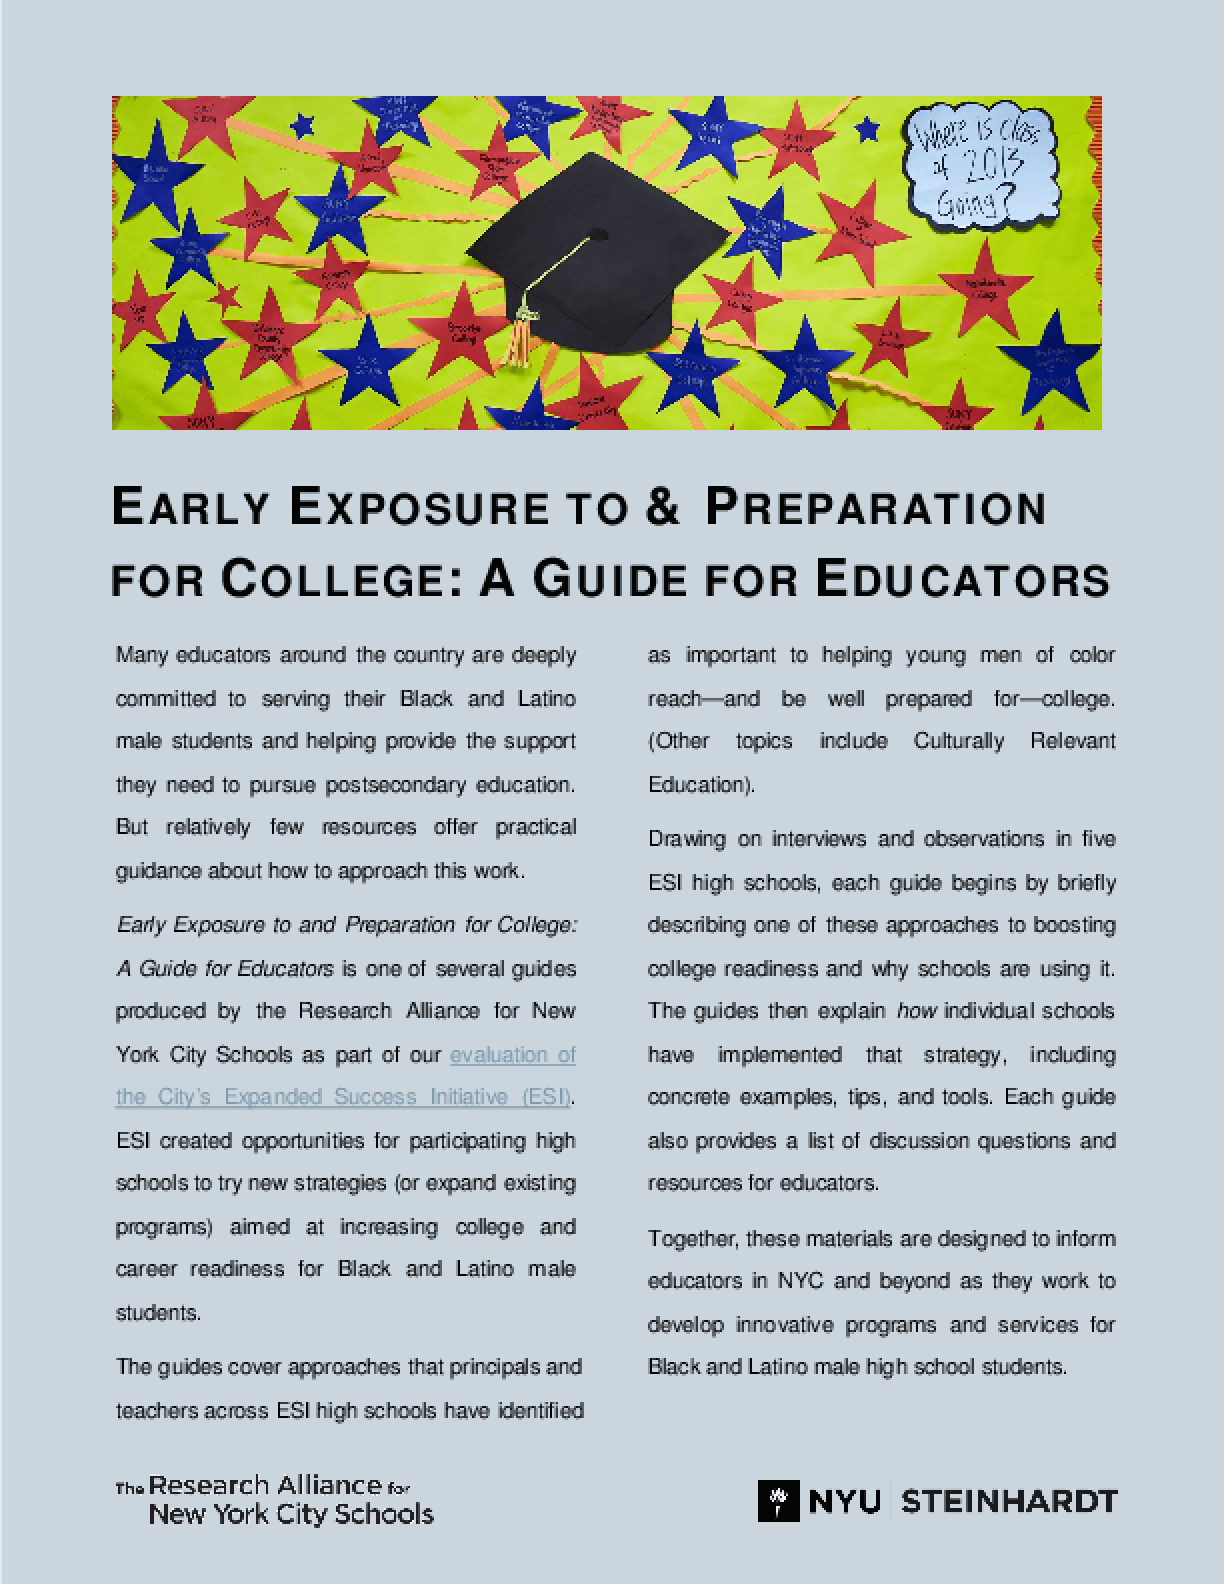 Early Exposure to and Preparation for College: A Guide for Educators